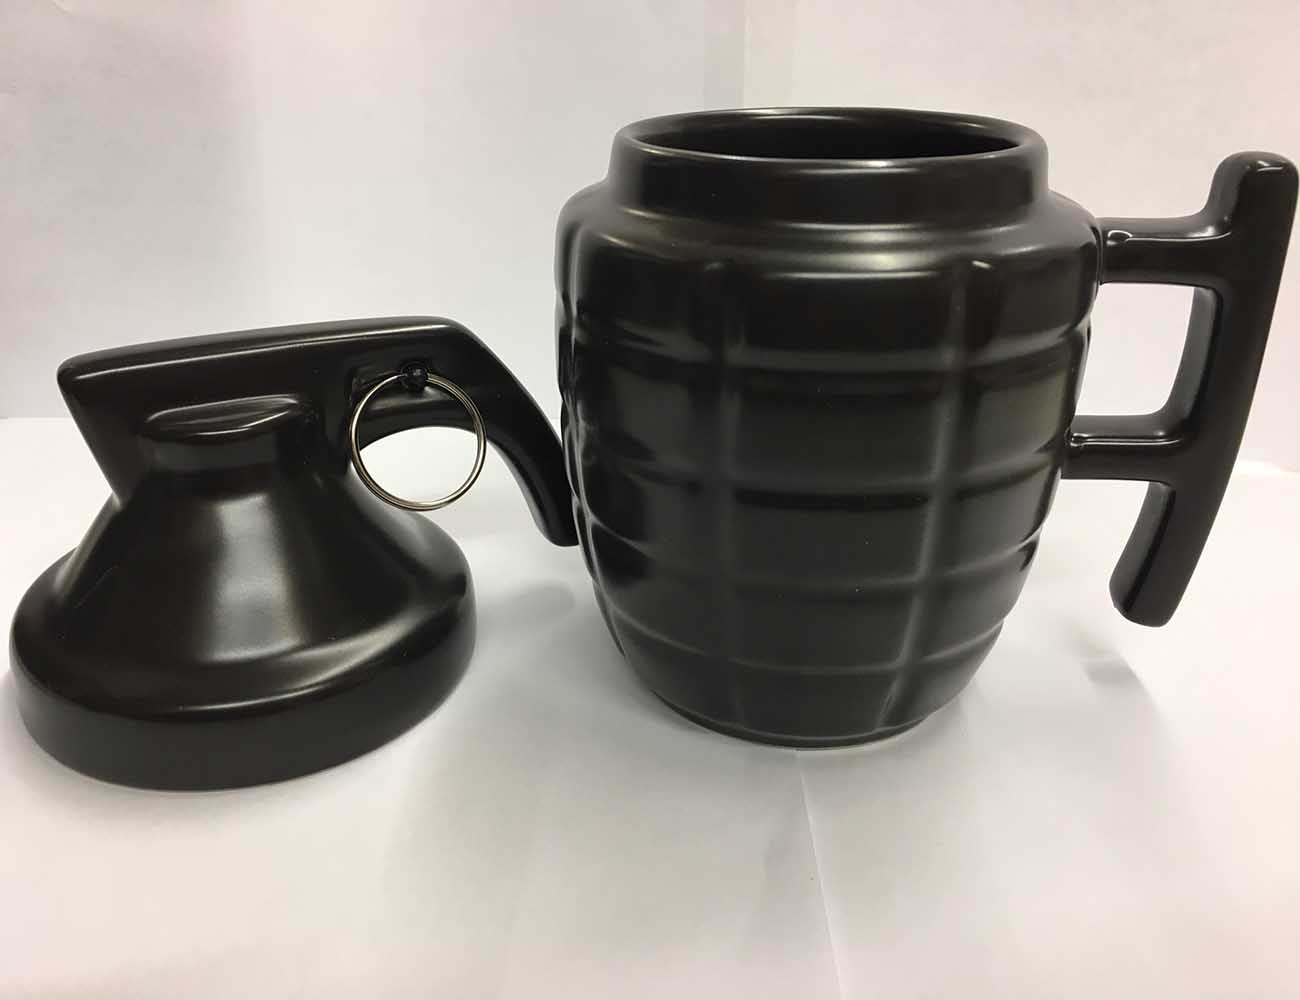 Grenade Mug – Replicating the Grenade Design on Your Coffee Mug